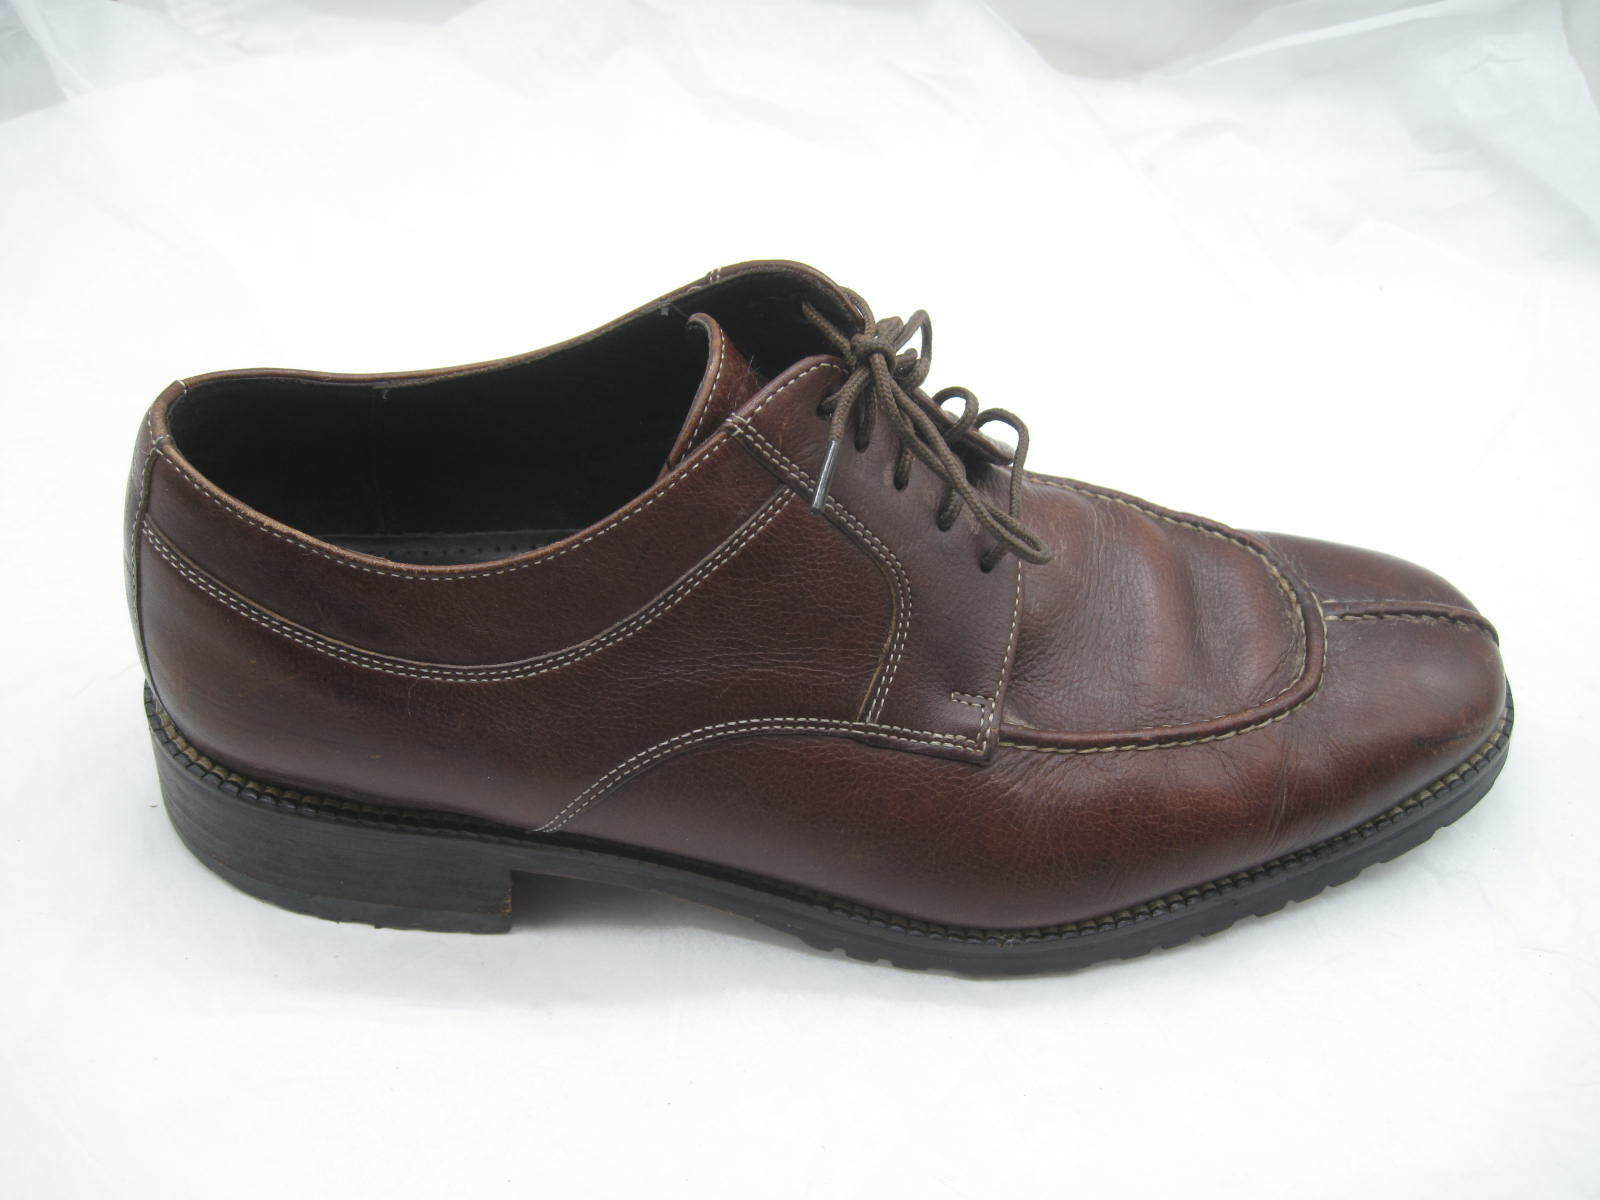 Cole Haan City brown split toe oxfords Mens dress formal shoes sz 10M C01626